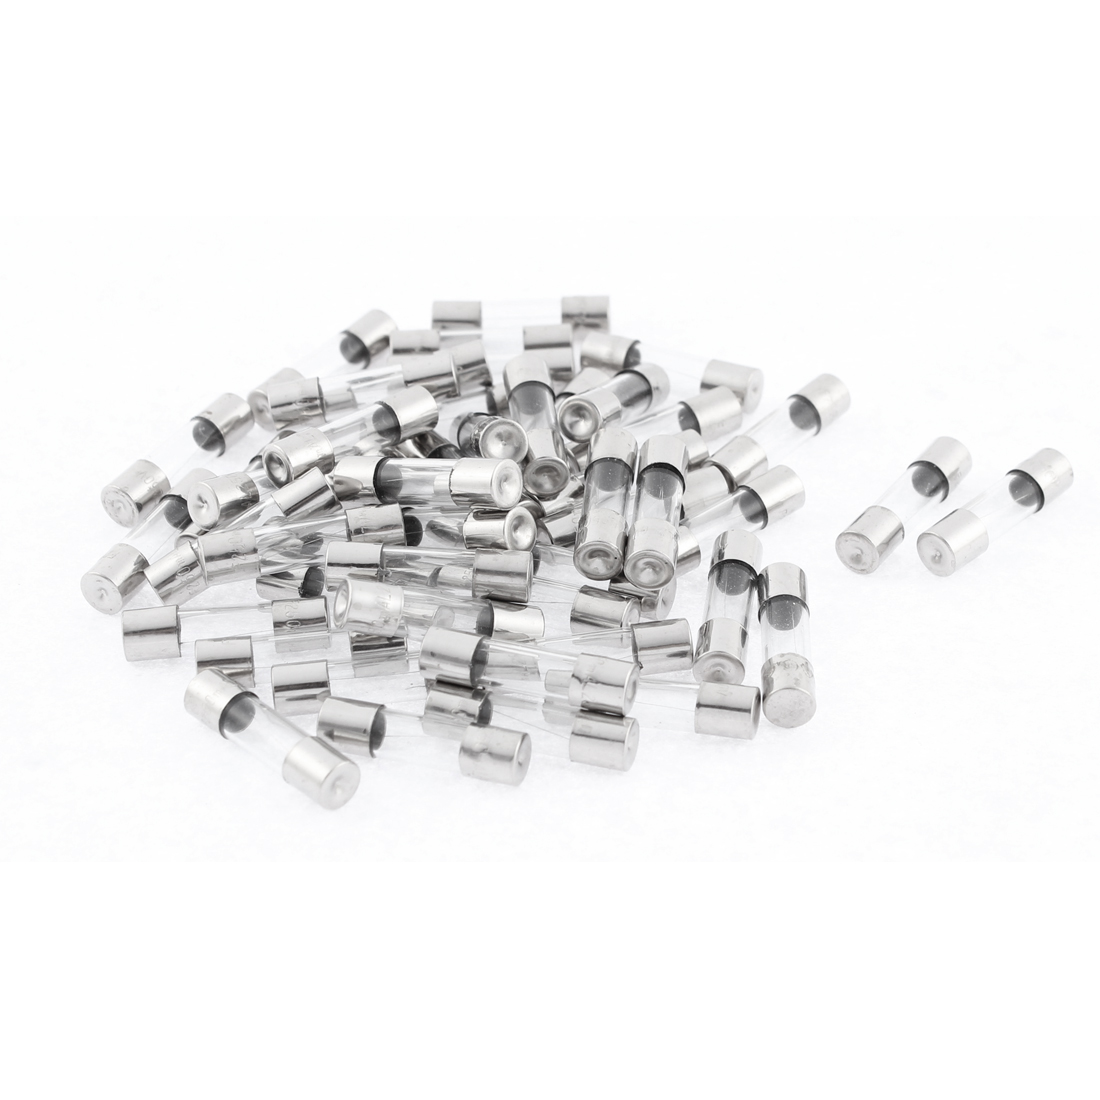 250V 0.25A Quick Fast Blow Glass Fuses 5mm x 20mm 50Pcs